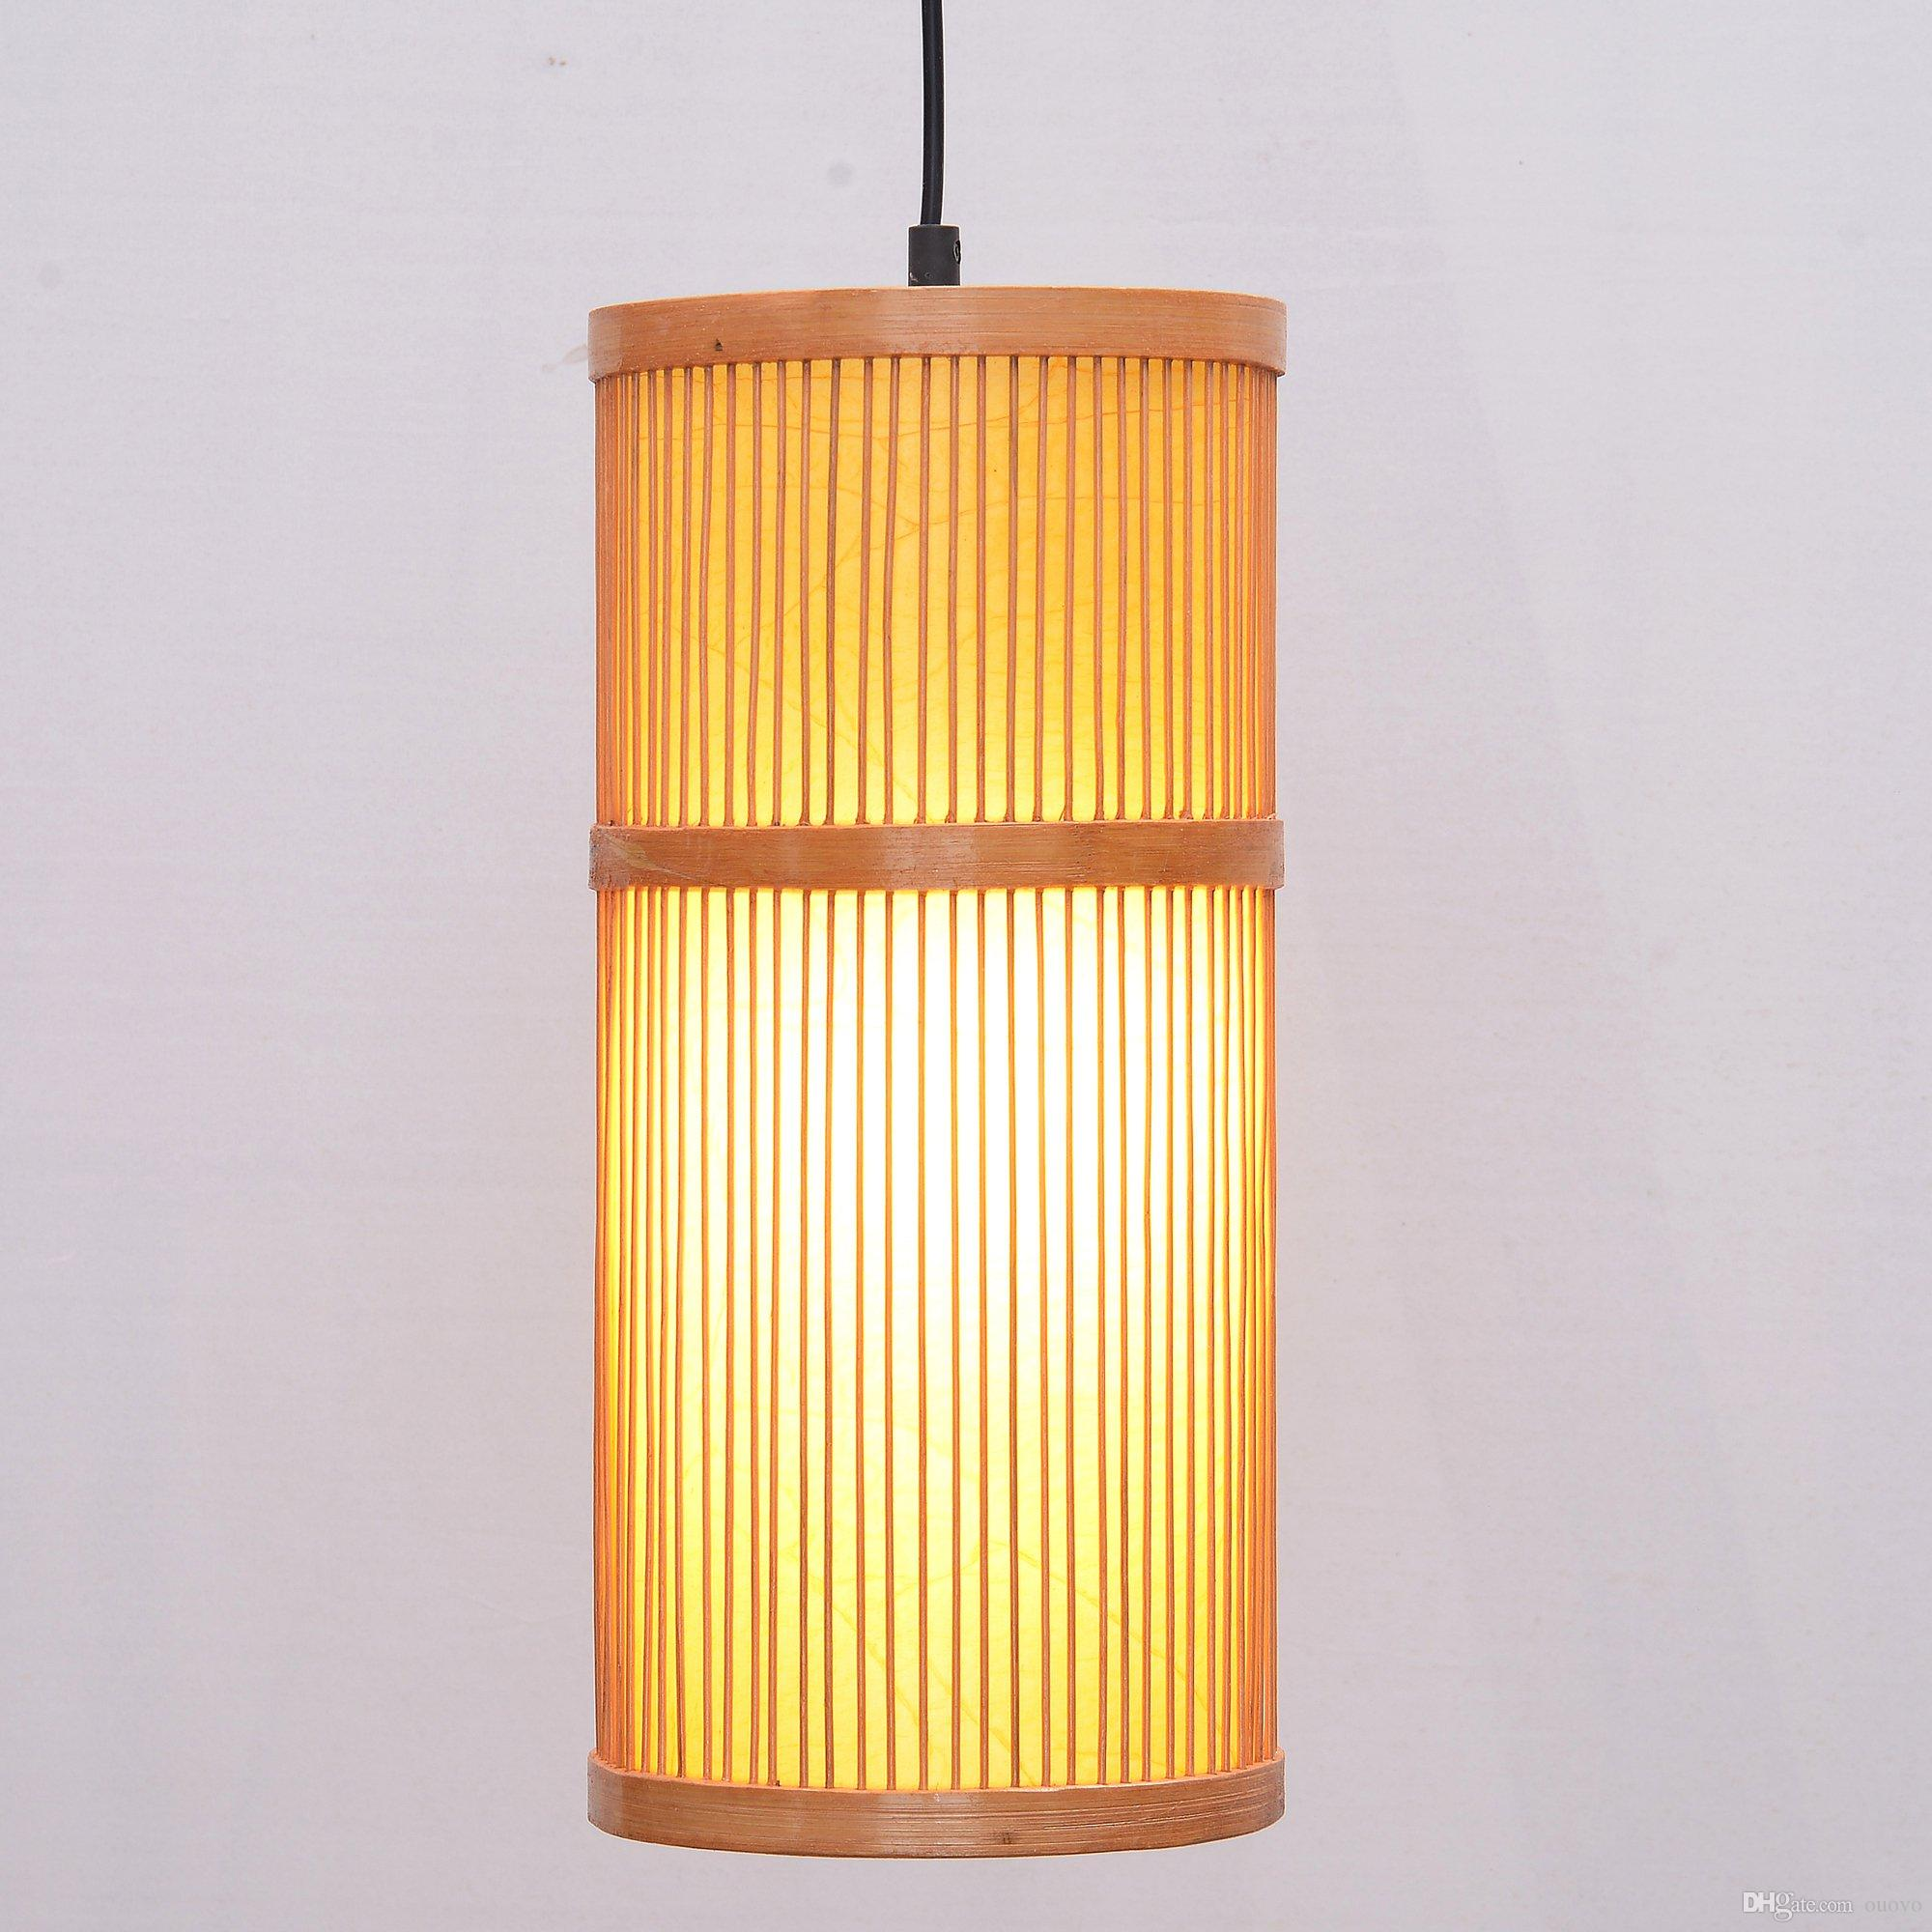 Asian Pendant Lighting Chinese Lantern South Asian Bamboo Cylinder Dining Room Ceiling Pendant Lamp Japanese Restaurant Pendant Lights Country Rustic Hanging Lamps Pendant Lamp Shade Pendant Dhgatecom South Asian Bamboo Cylinder Dining Room Ceiling Pendant Lamp